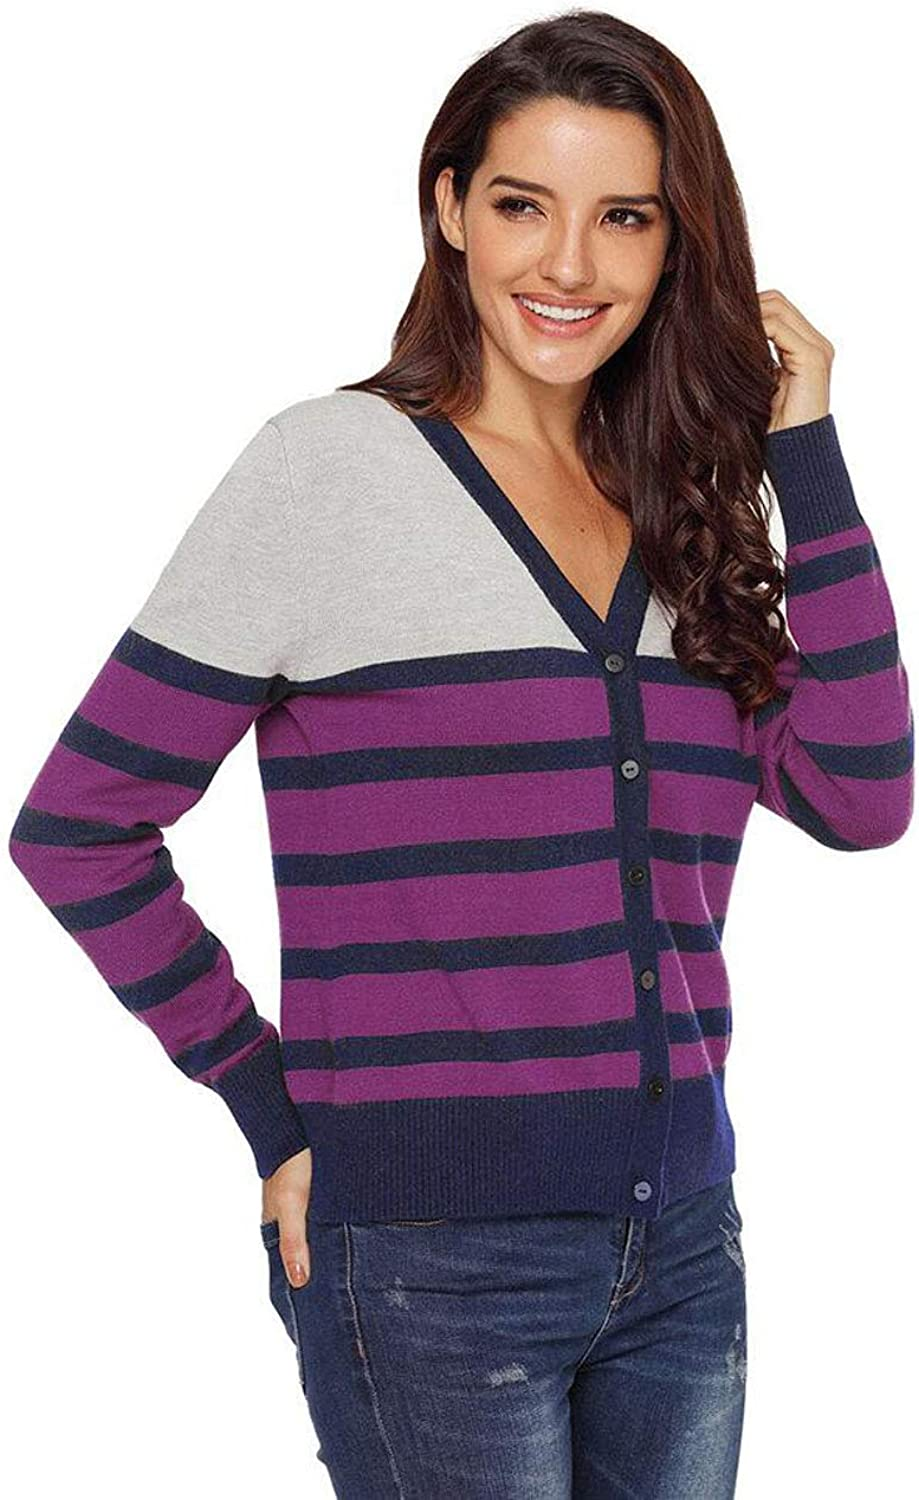 Women's Sweater,Striped VNeck Sweater,SingleRow Button LongSleeved Cardigan Coat Soft and Comfortable Warm (color   Purple, Size   S)